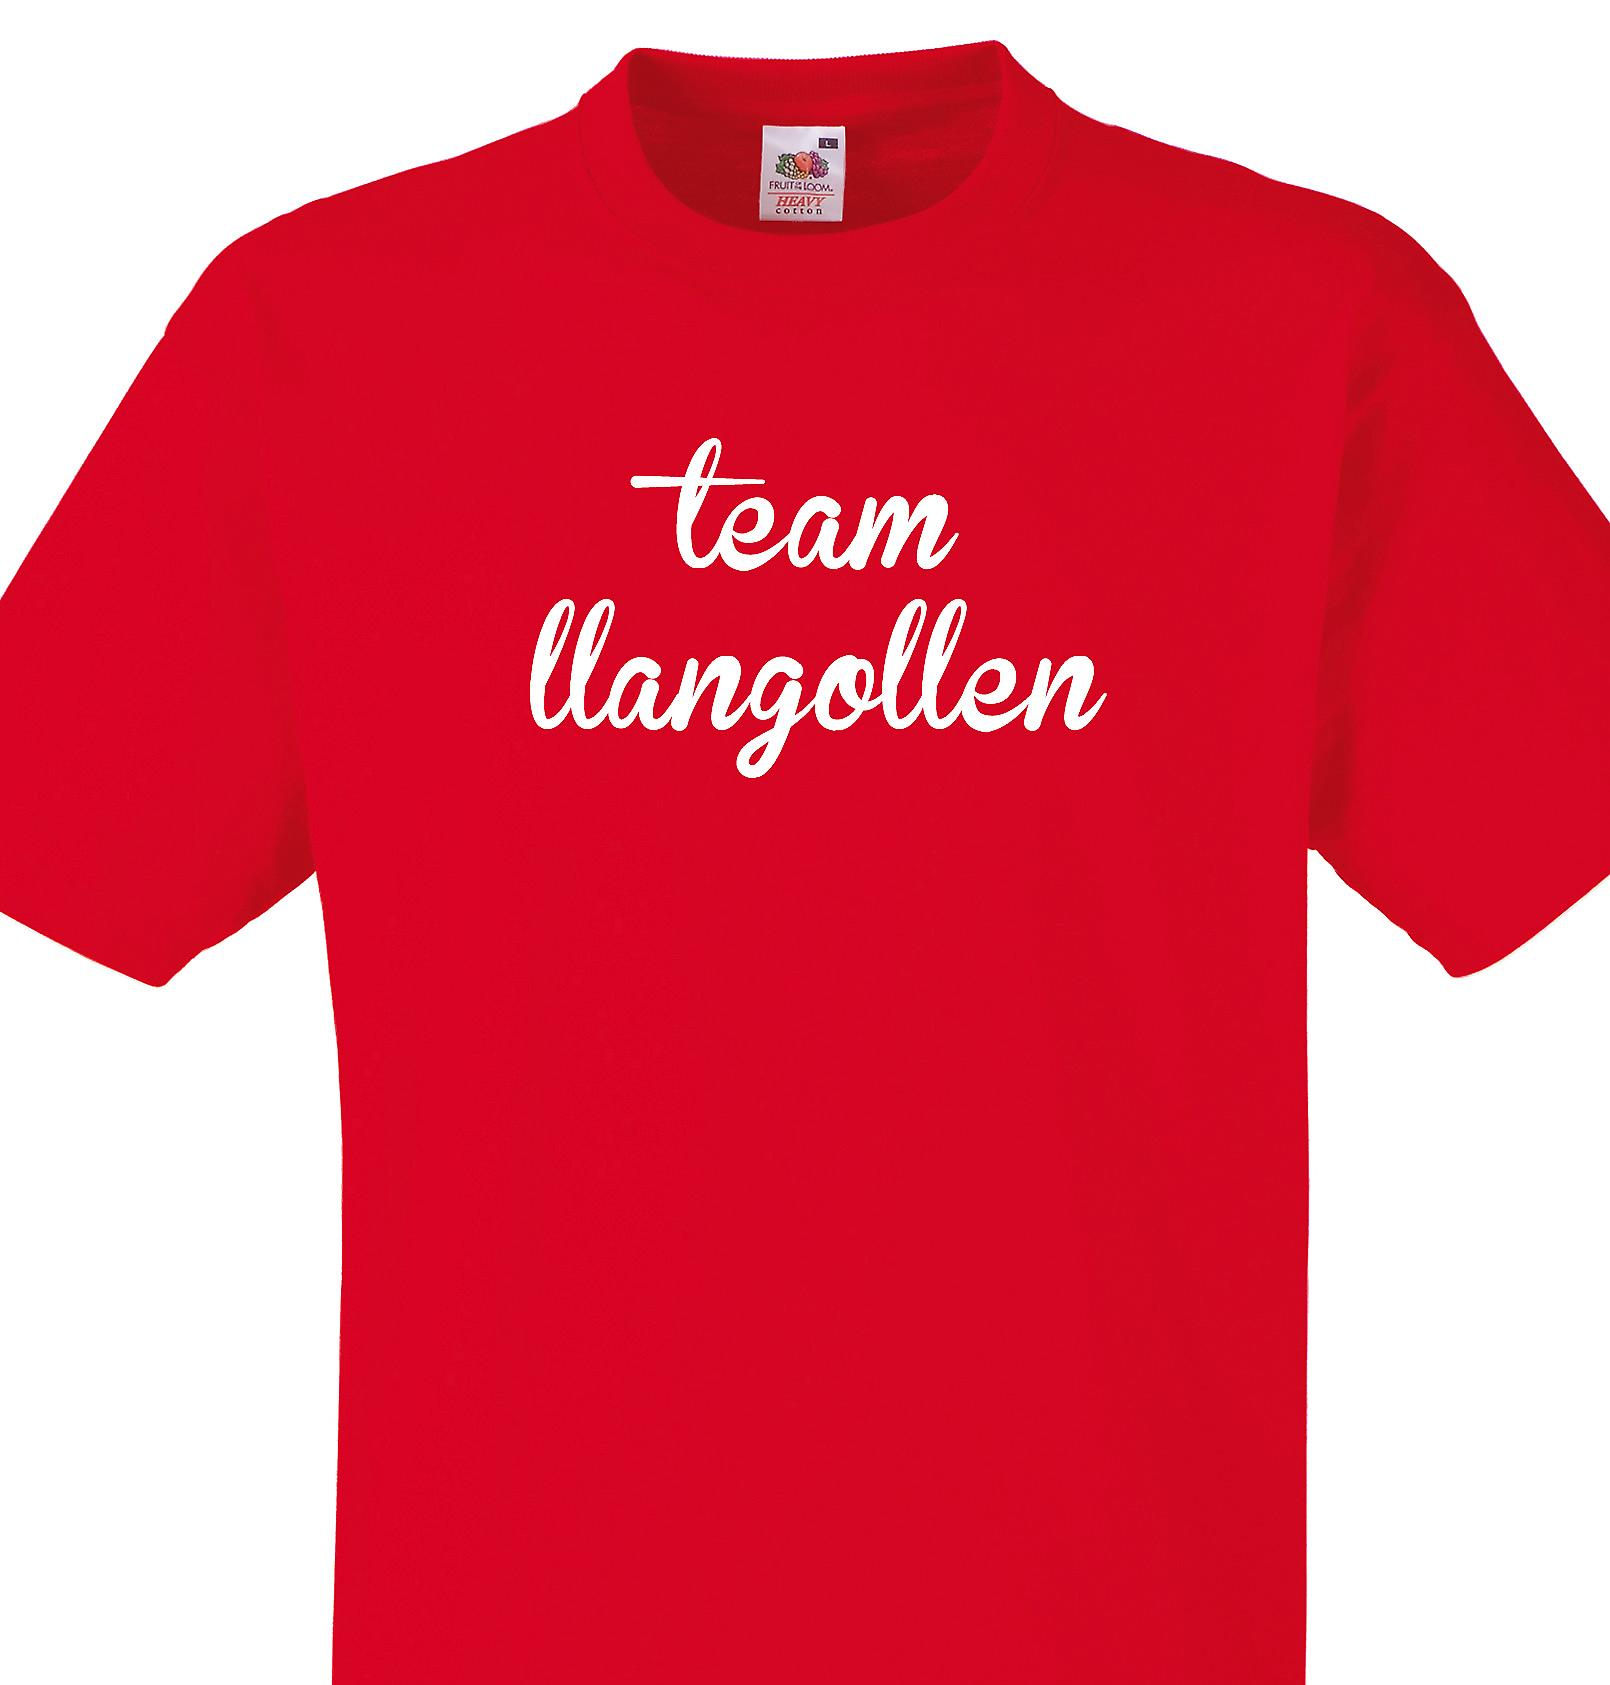 Team Llangollen Red T shirt